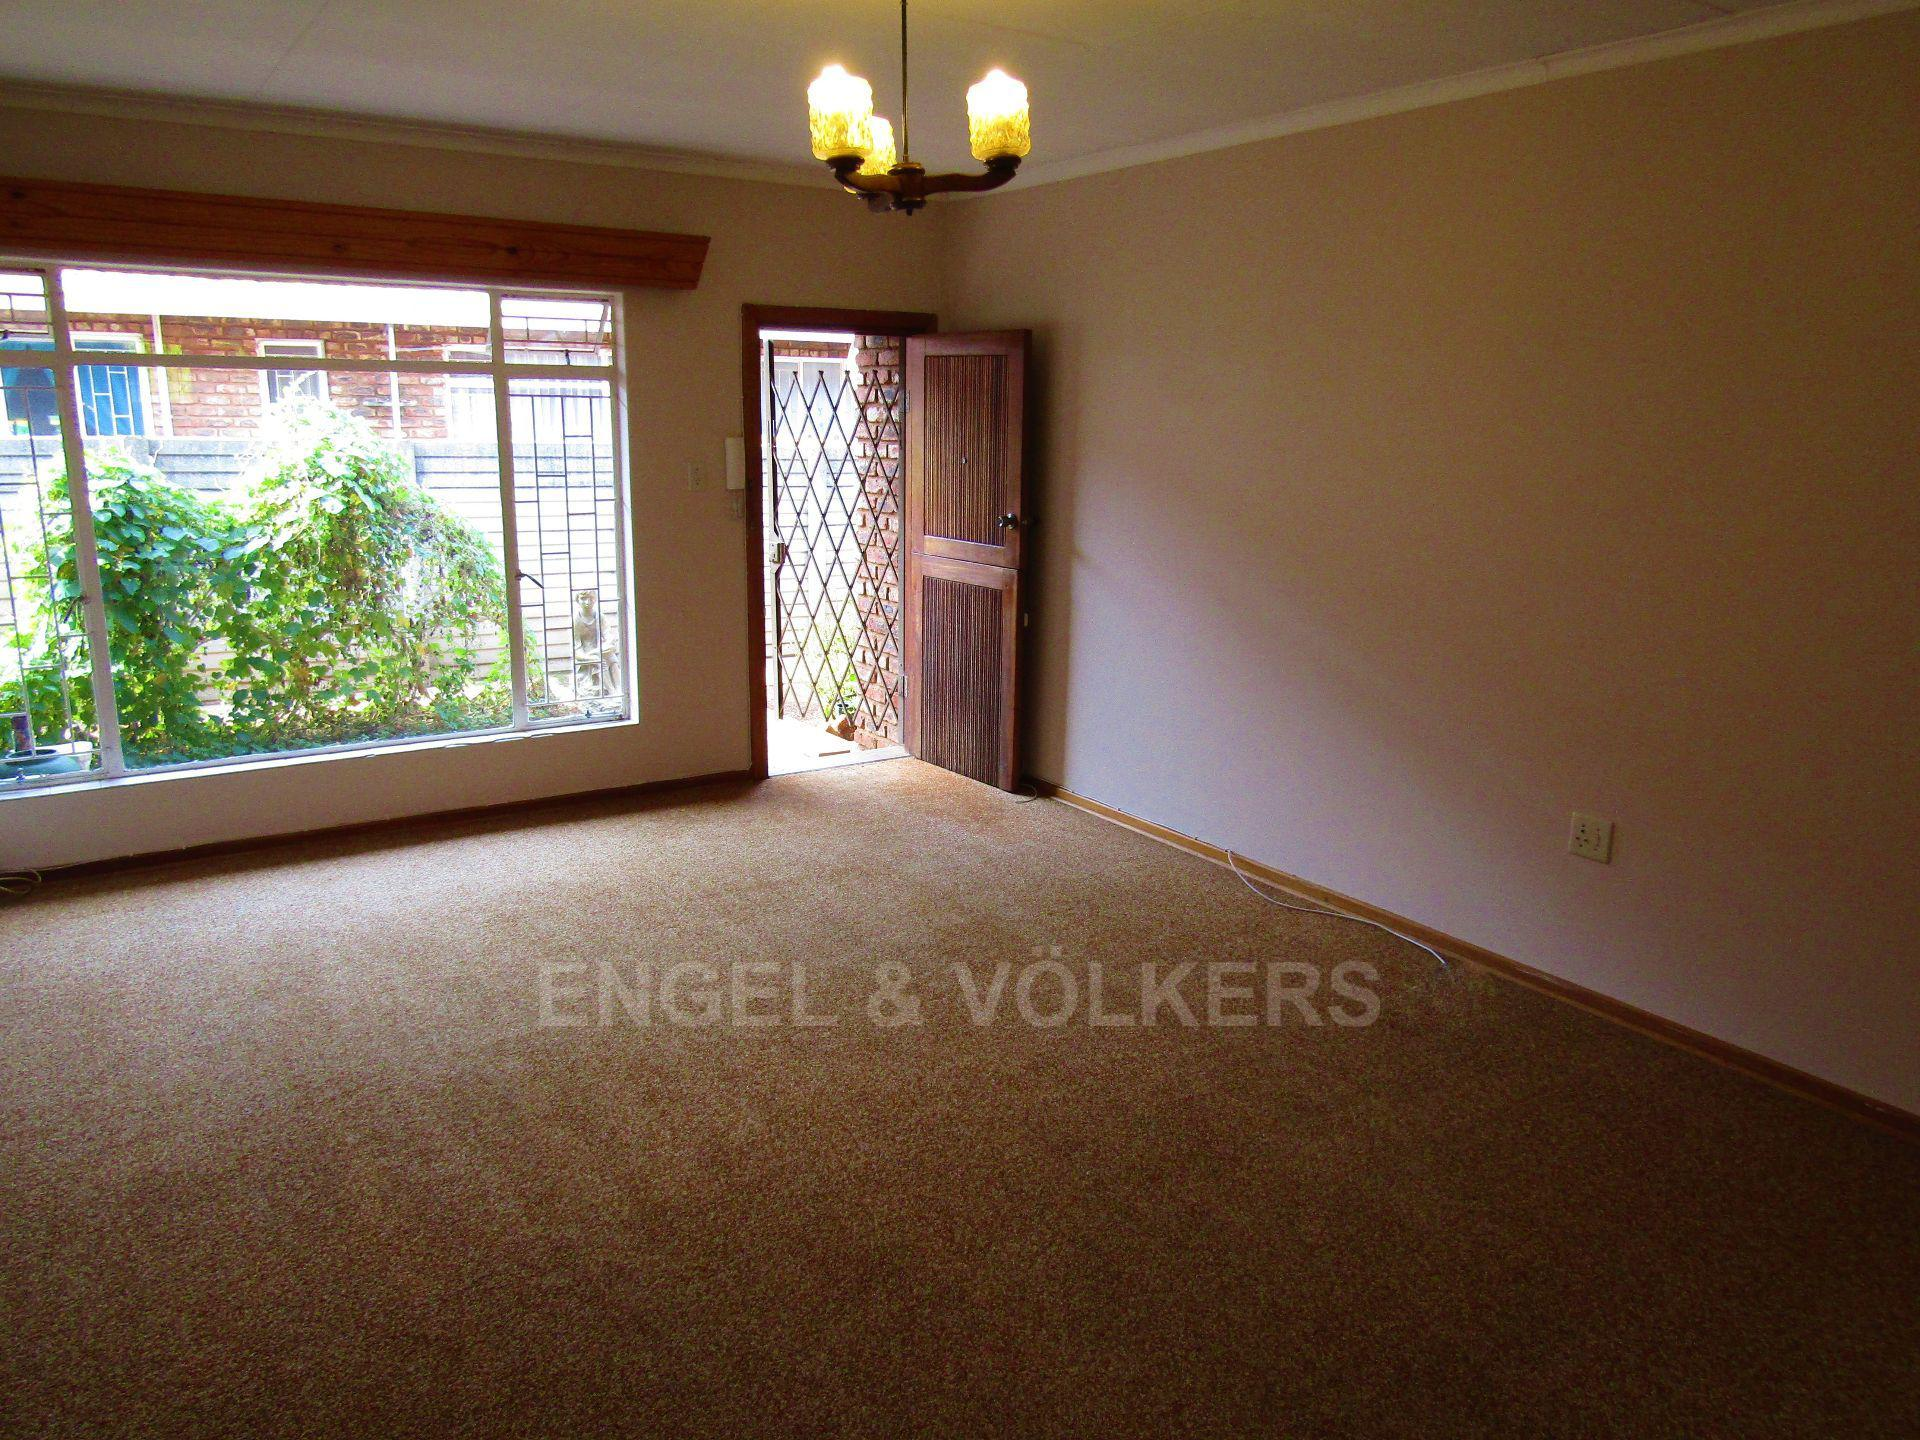 Potchefstroom Central property for sale. Ref No: 13459099. Picture no 4